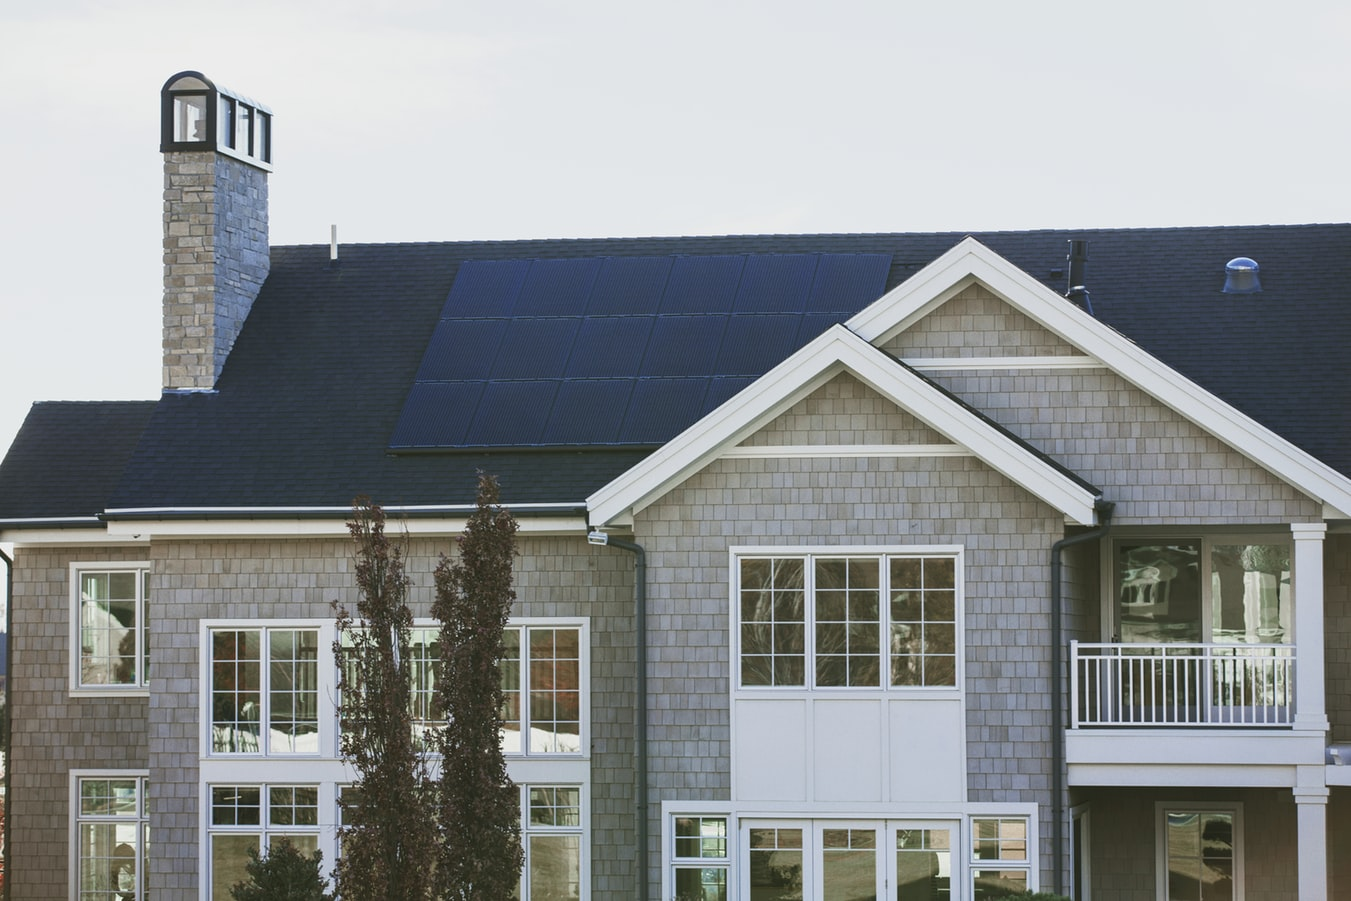 Solar Panels for Your House - House with Rooftop Solar Panels